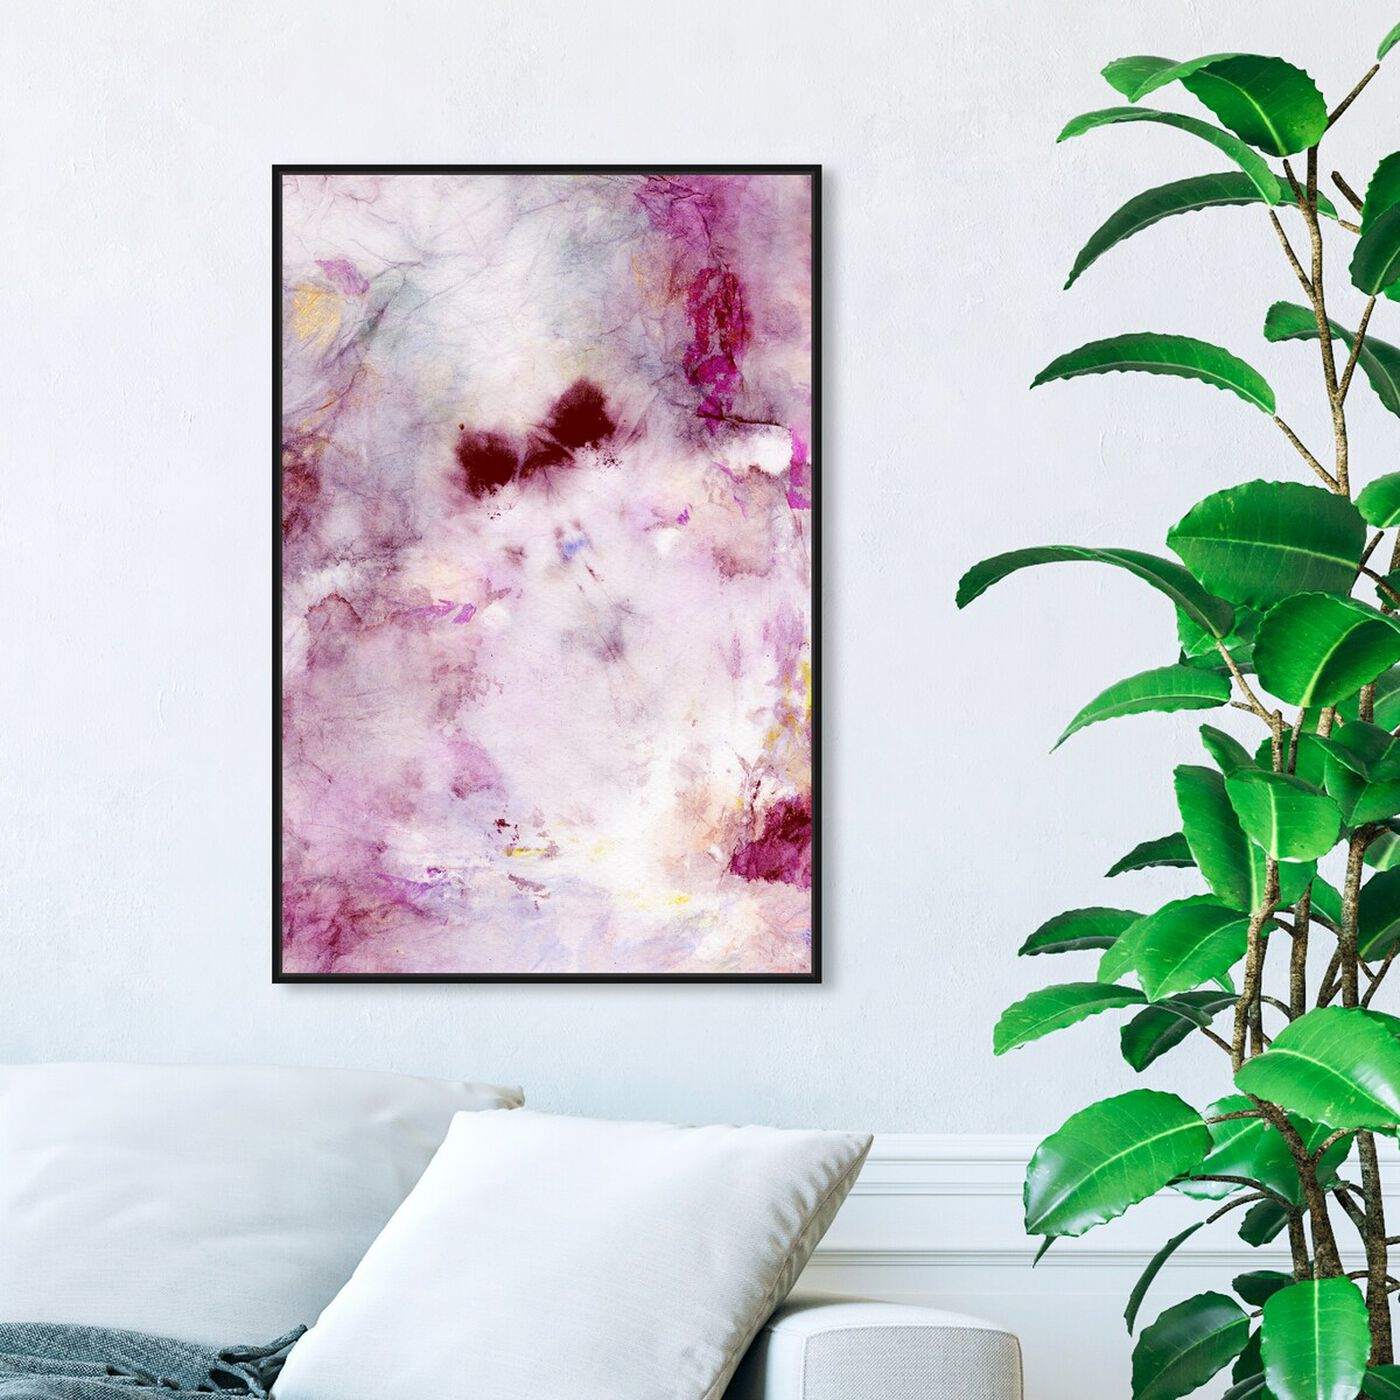 Hanging view of Tie Dye Beauty featuring abstract and textures art.